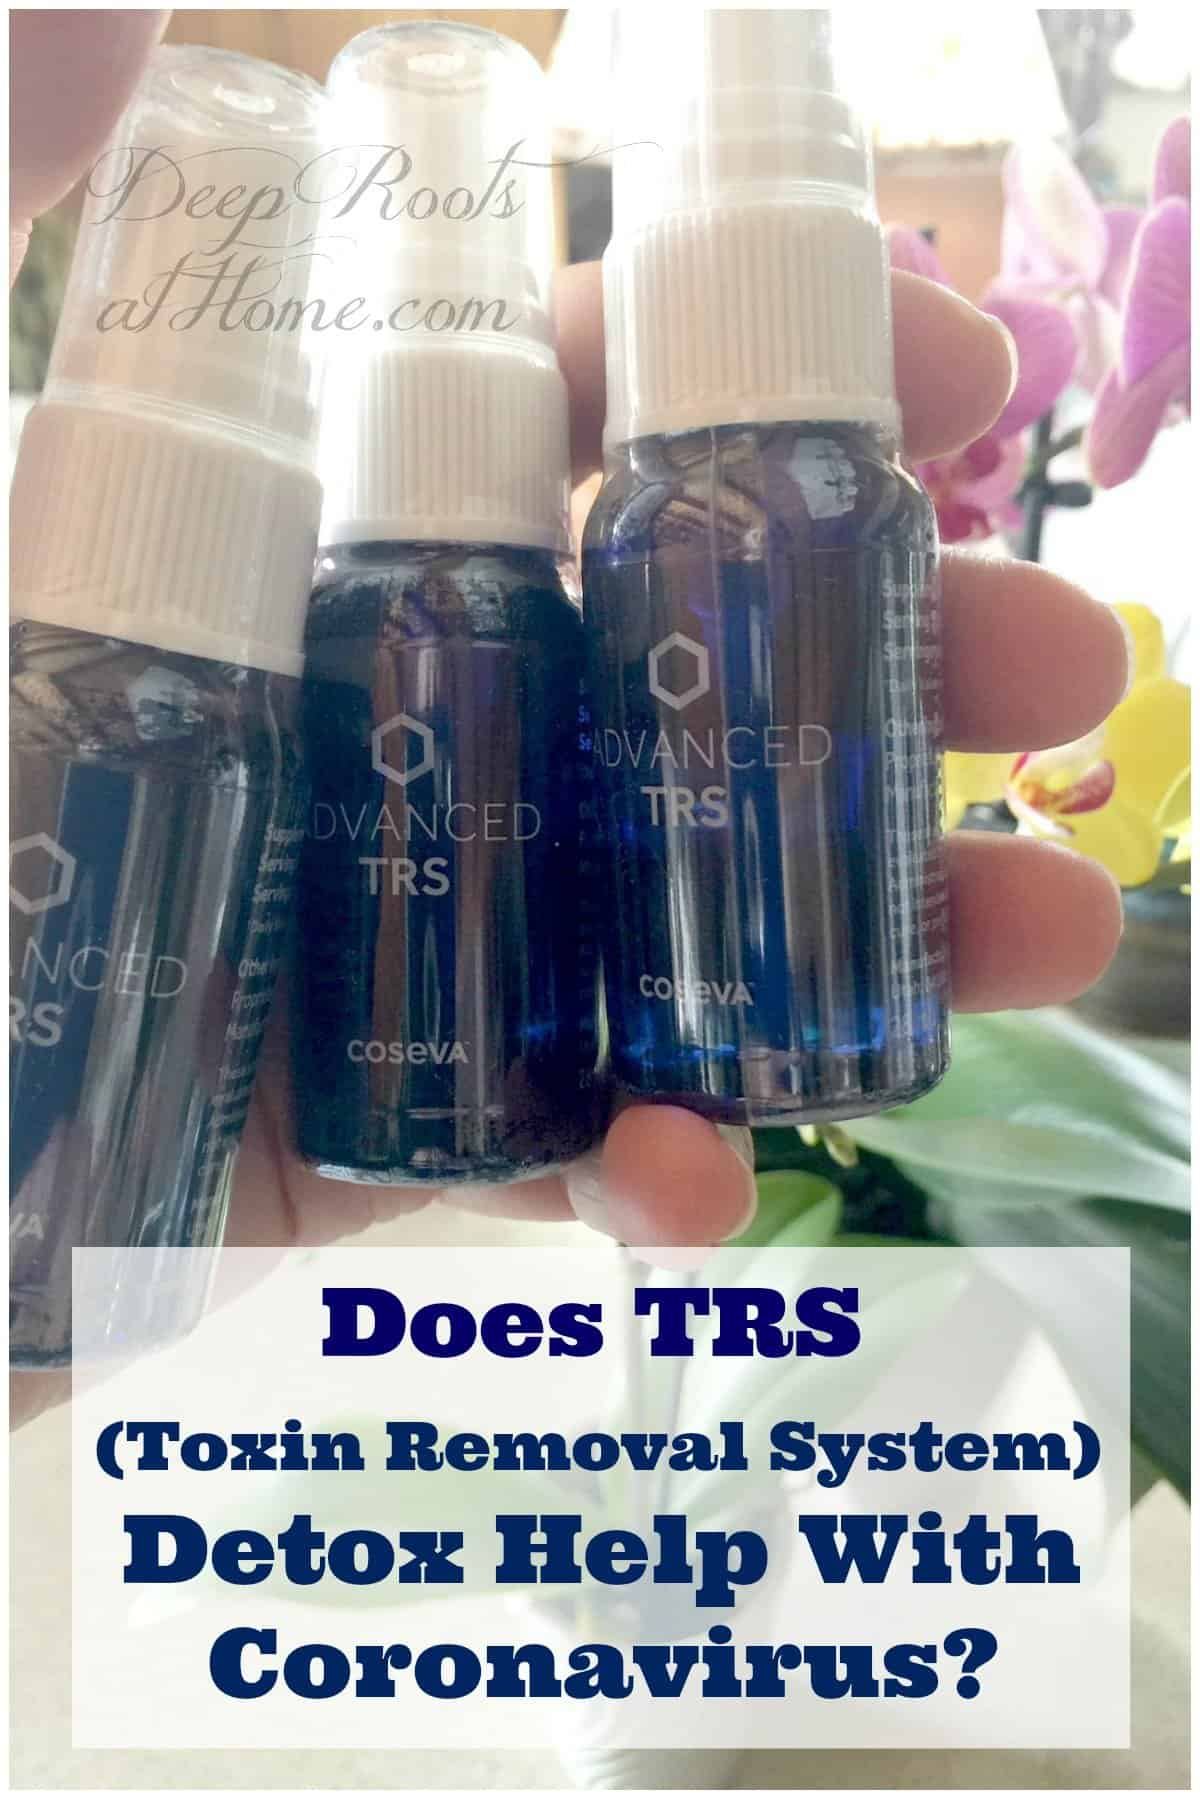 Does TRS (Toxin Removal System) Detox Help With Coronavirus? 3 bottles